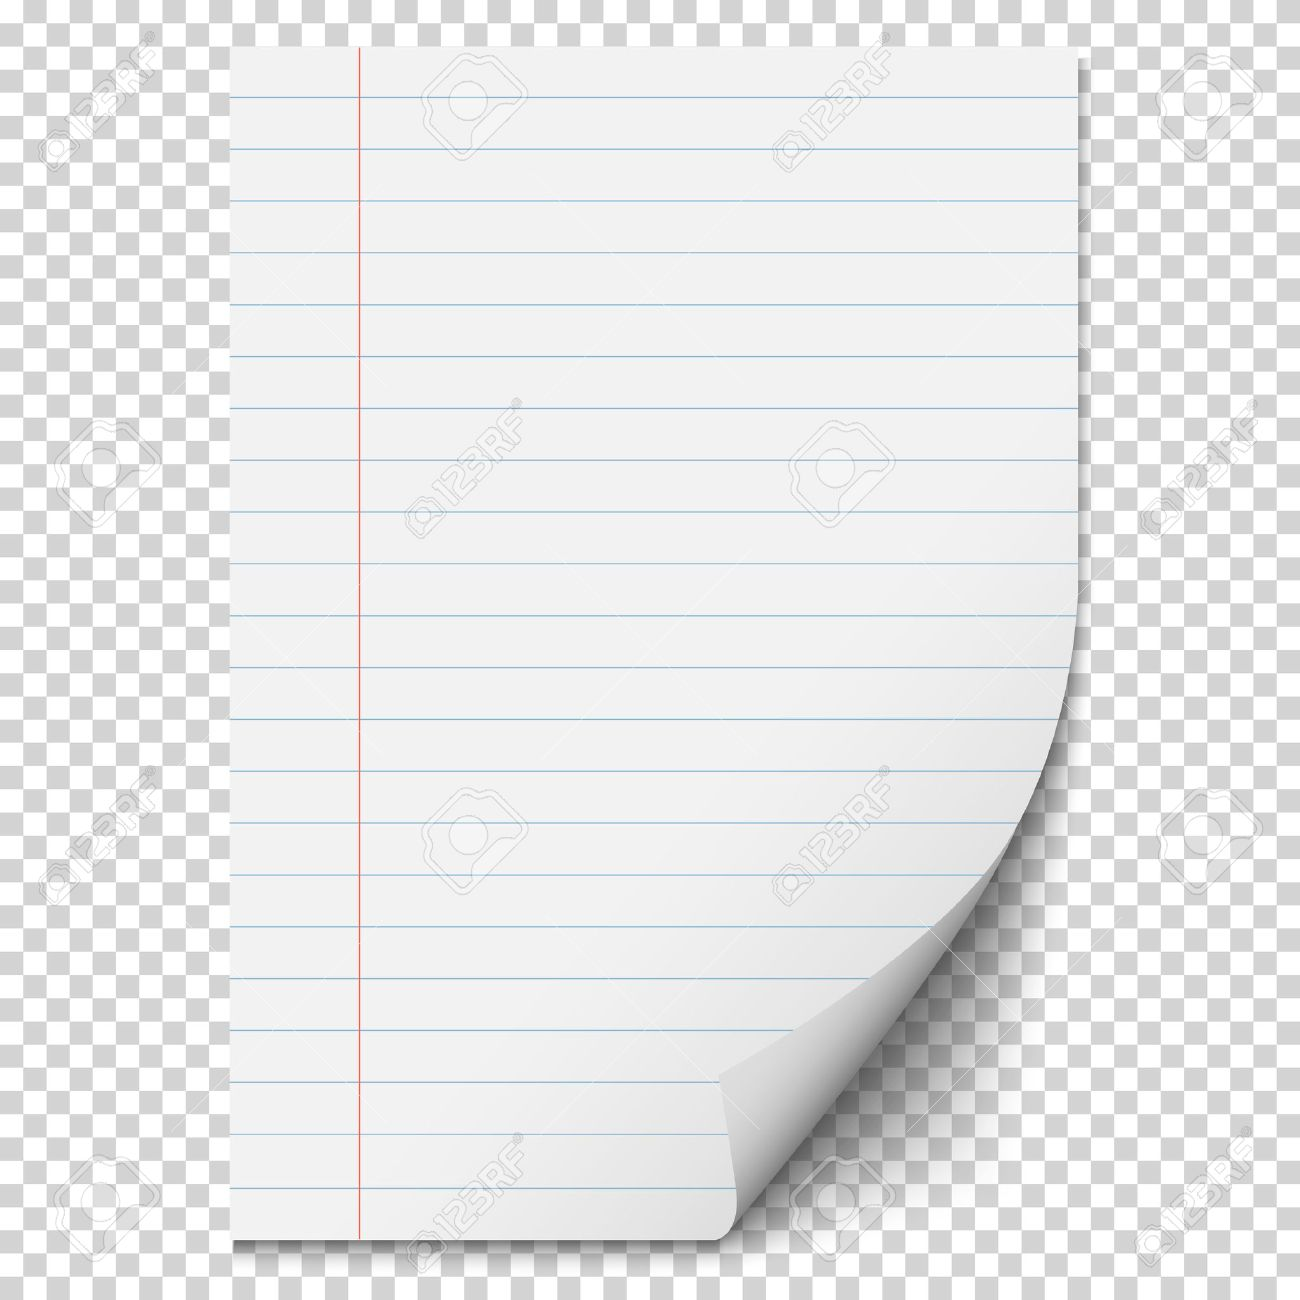 Notebook Paper Transparent Background